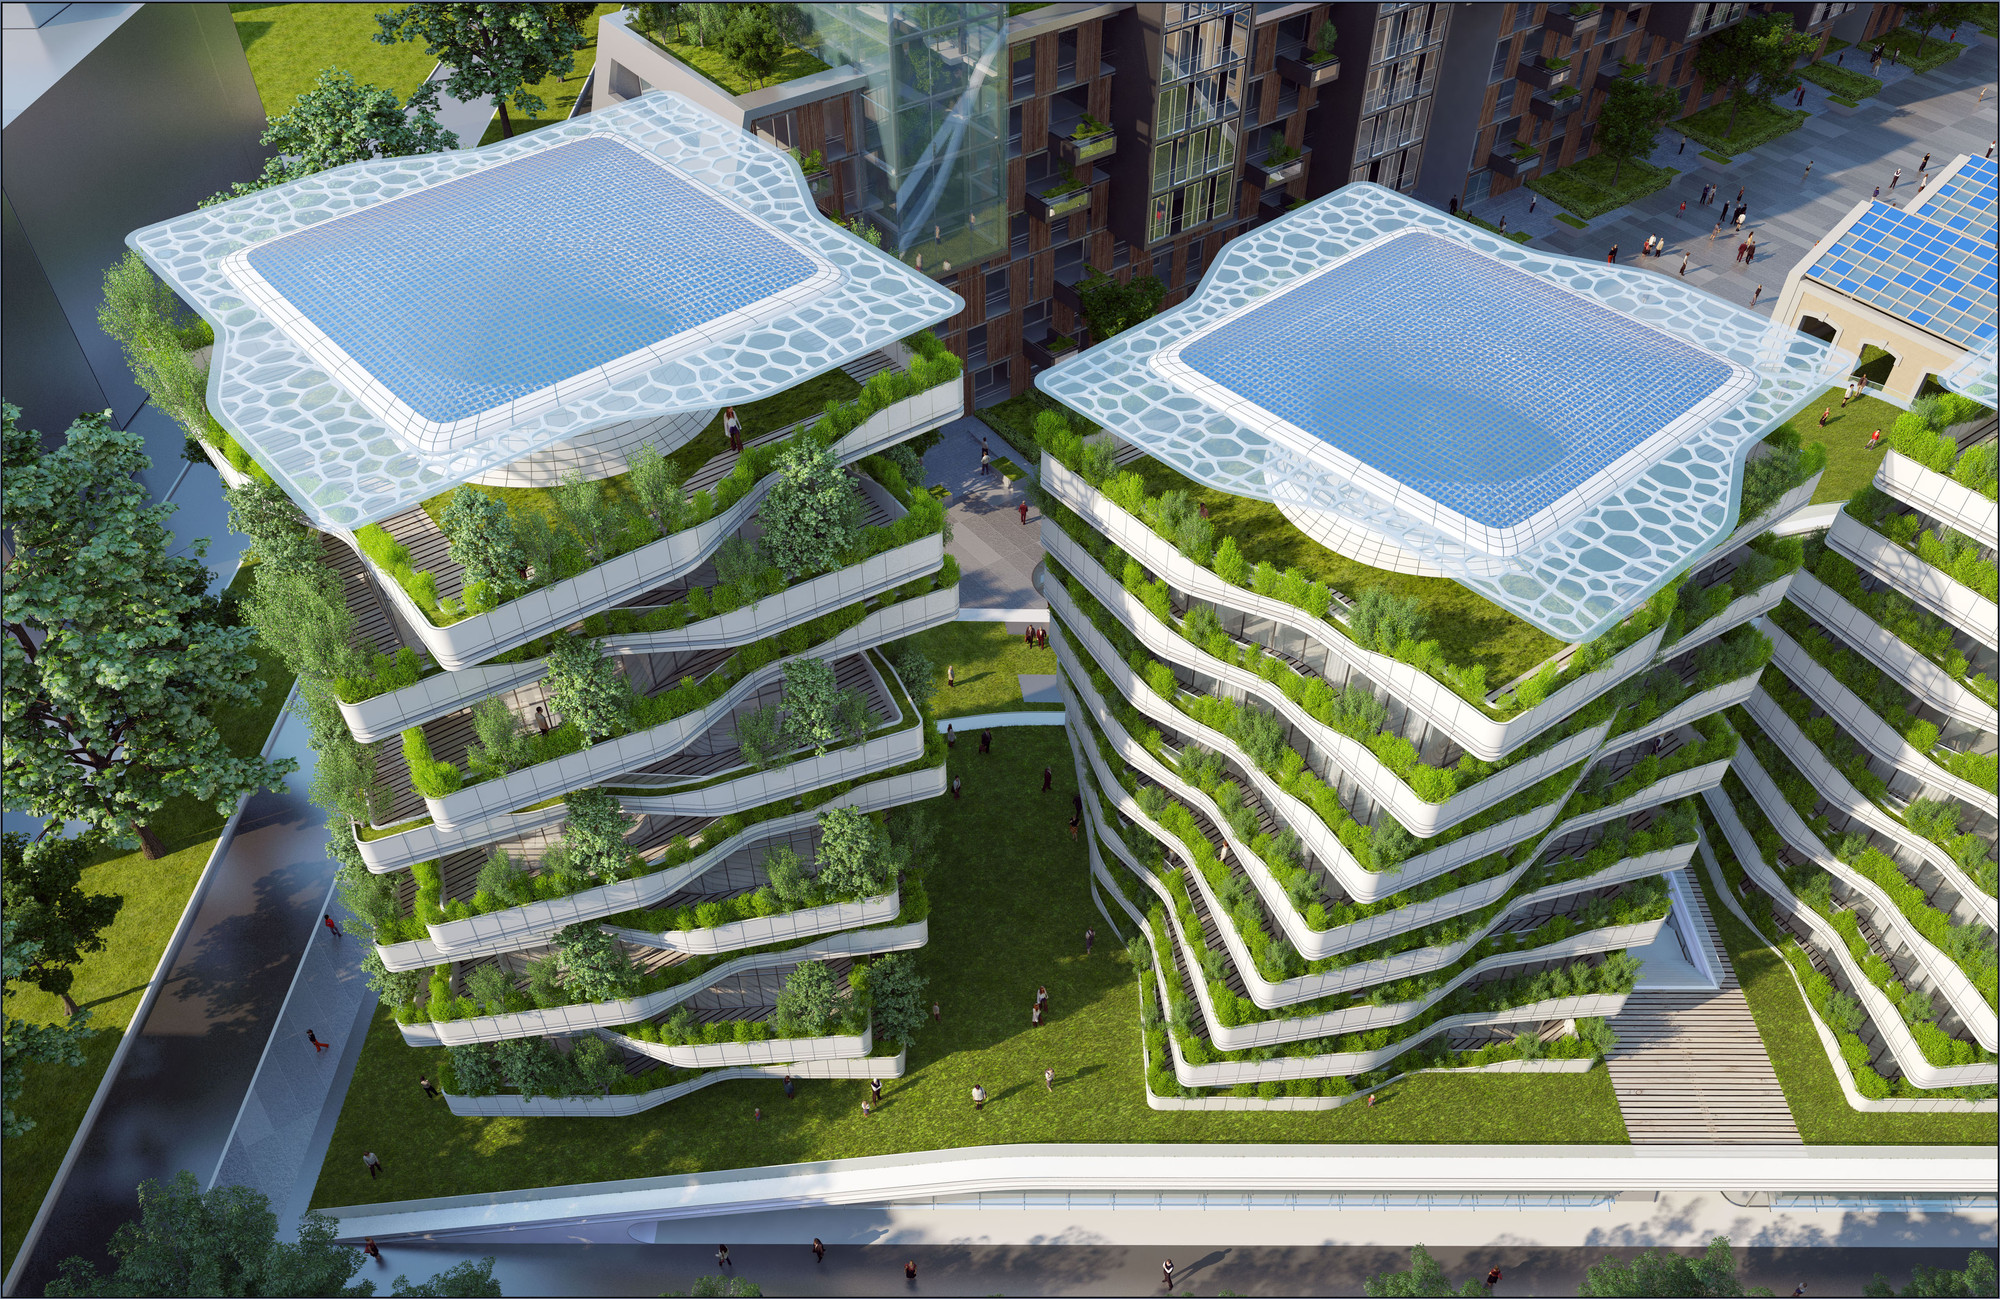 Citt della scienza masterplan predicts future of self for Architecture futuriste ecologique